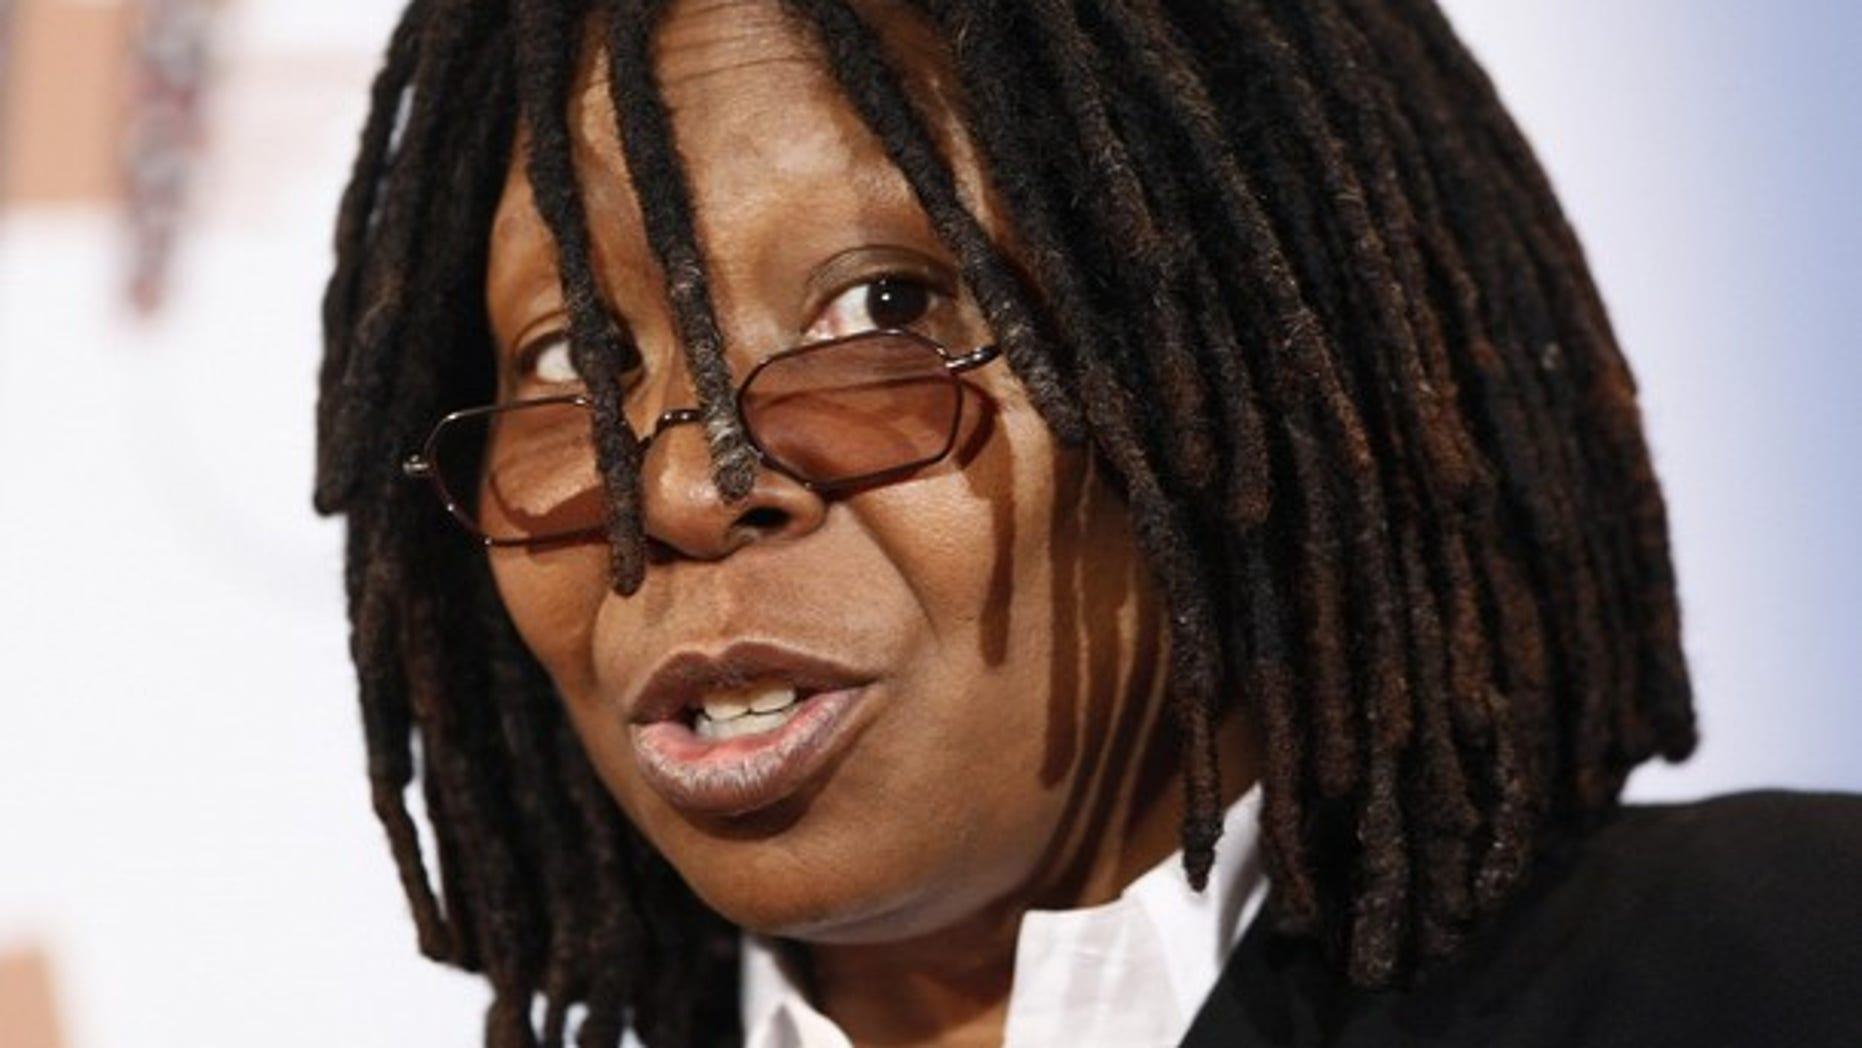 Actress and comedian Whoopi Goldberg attends a news conference to announce new musical at Operetta house in Hamburg December 4, 2009. Stage Entertainment Germany will present the famous musical 'Sister Act' at the TUI Operetta house at Hamburg's Reeperbahn from autumn 2010 on.    REUTERS/Christian Charisius  (GERMANY - Tags: ENTERTAINMENT HEADSHOT)